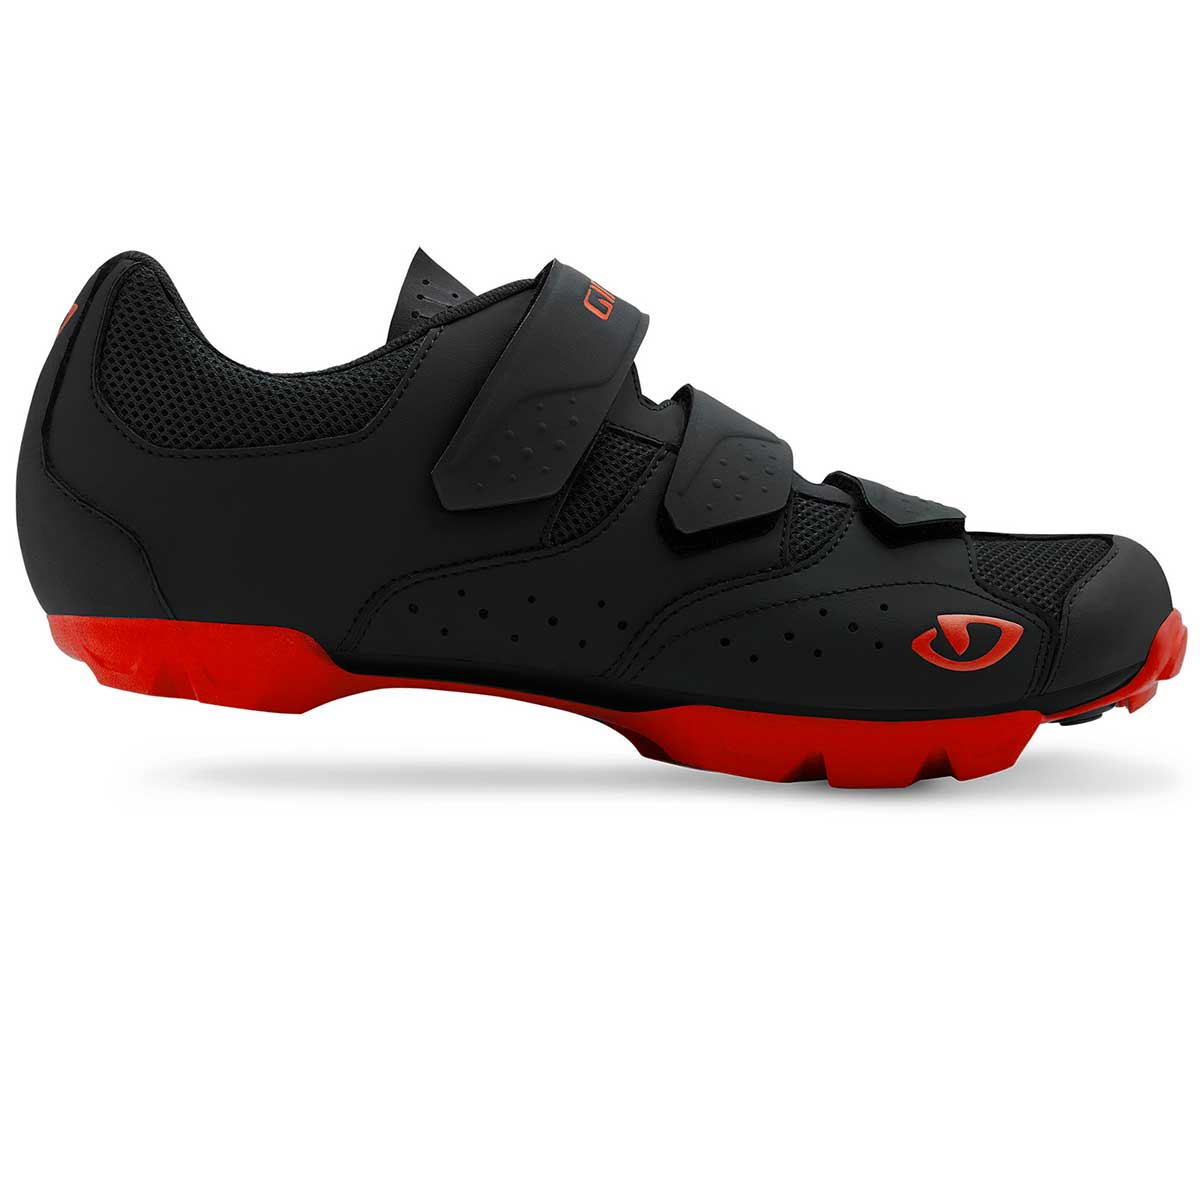 Giro Carbide R II Shoe in Black and Red main view